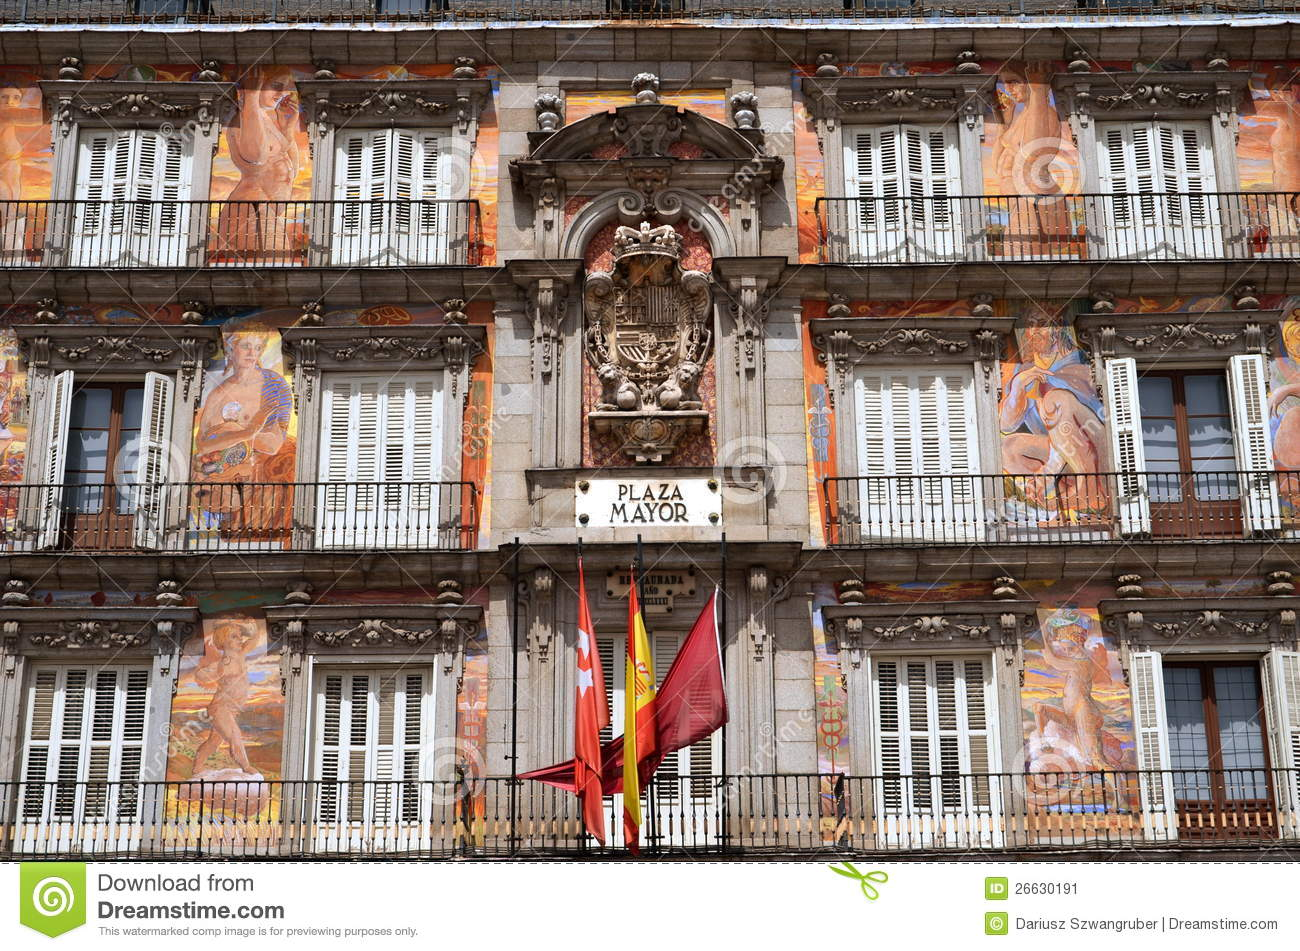 Casa de la panaderia on plaza mayor in madrid spa editorial photo image of great apartment - Casa de la panaderia madrid ...